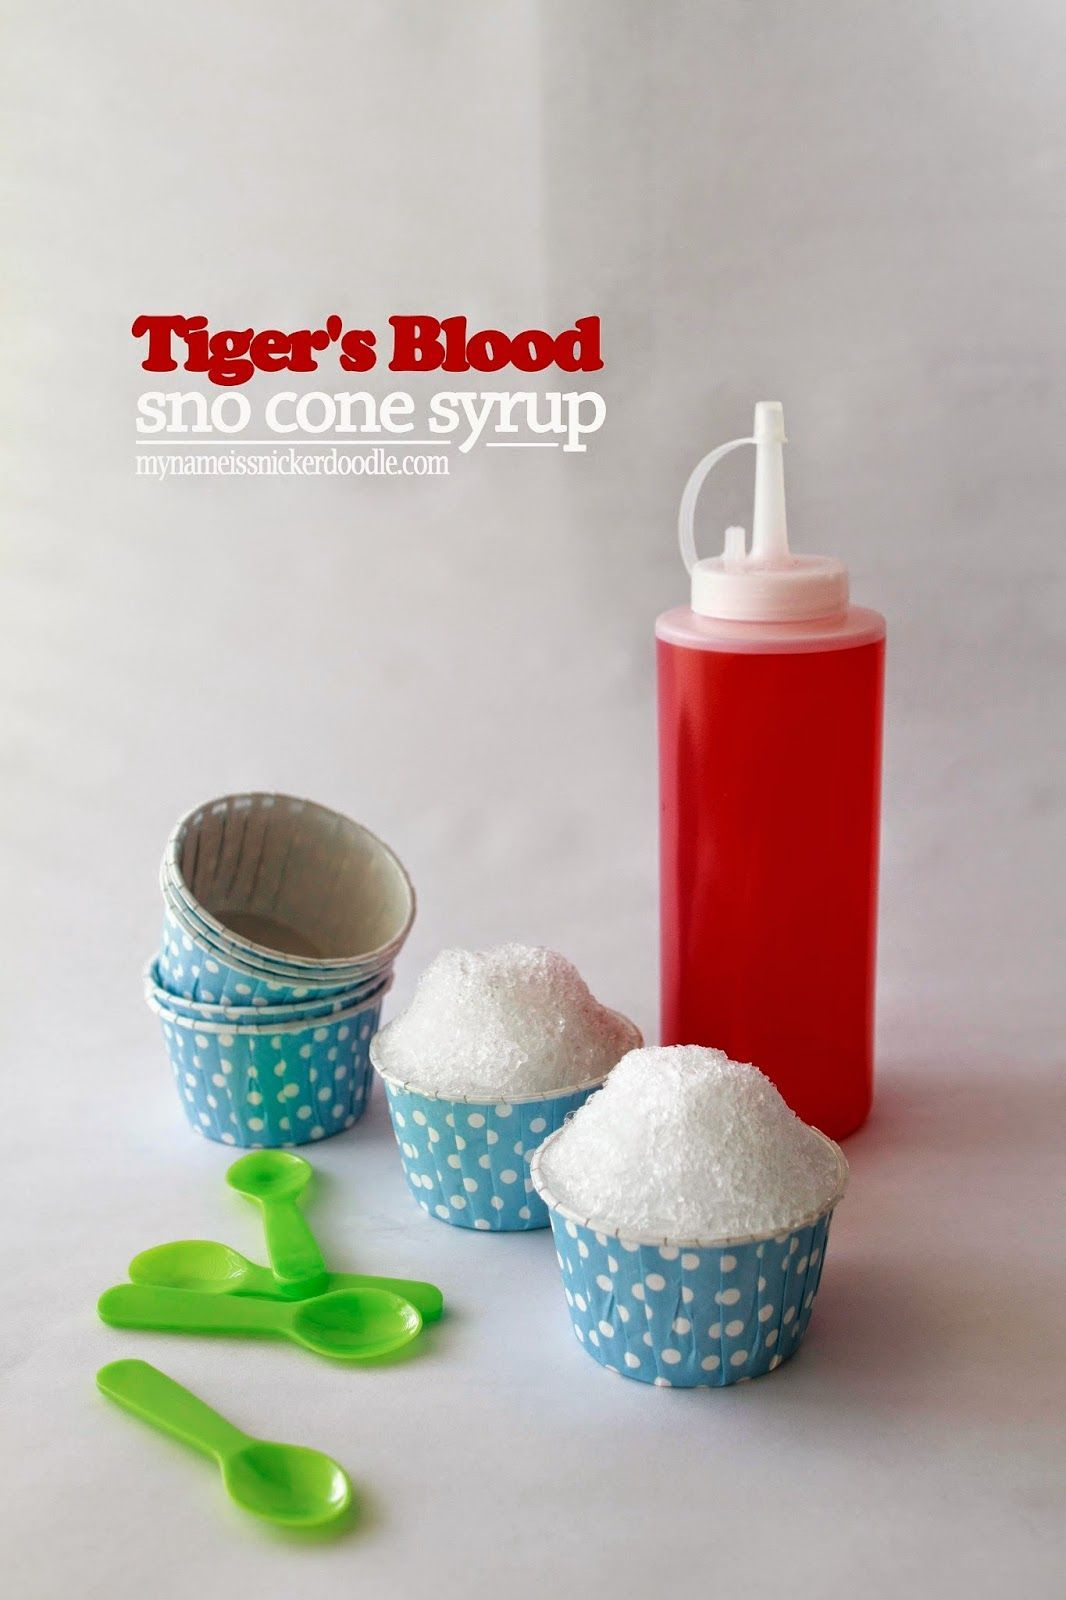 Blood Sno Cone Syrup Tiger's Blood is a super popular flavor for sno cones! You can make it at home with this super easy recipe from Tiger's Blood is a super popular flavor for sno cones! You can make it at home with this super easy recipe from